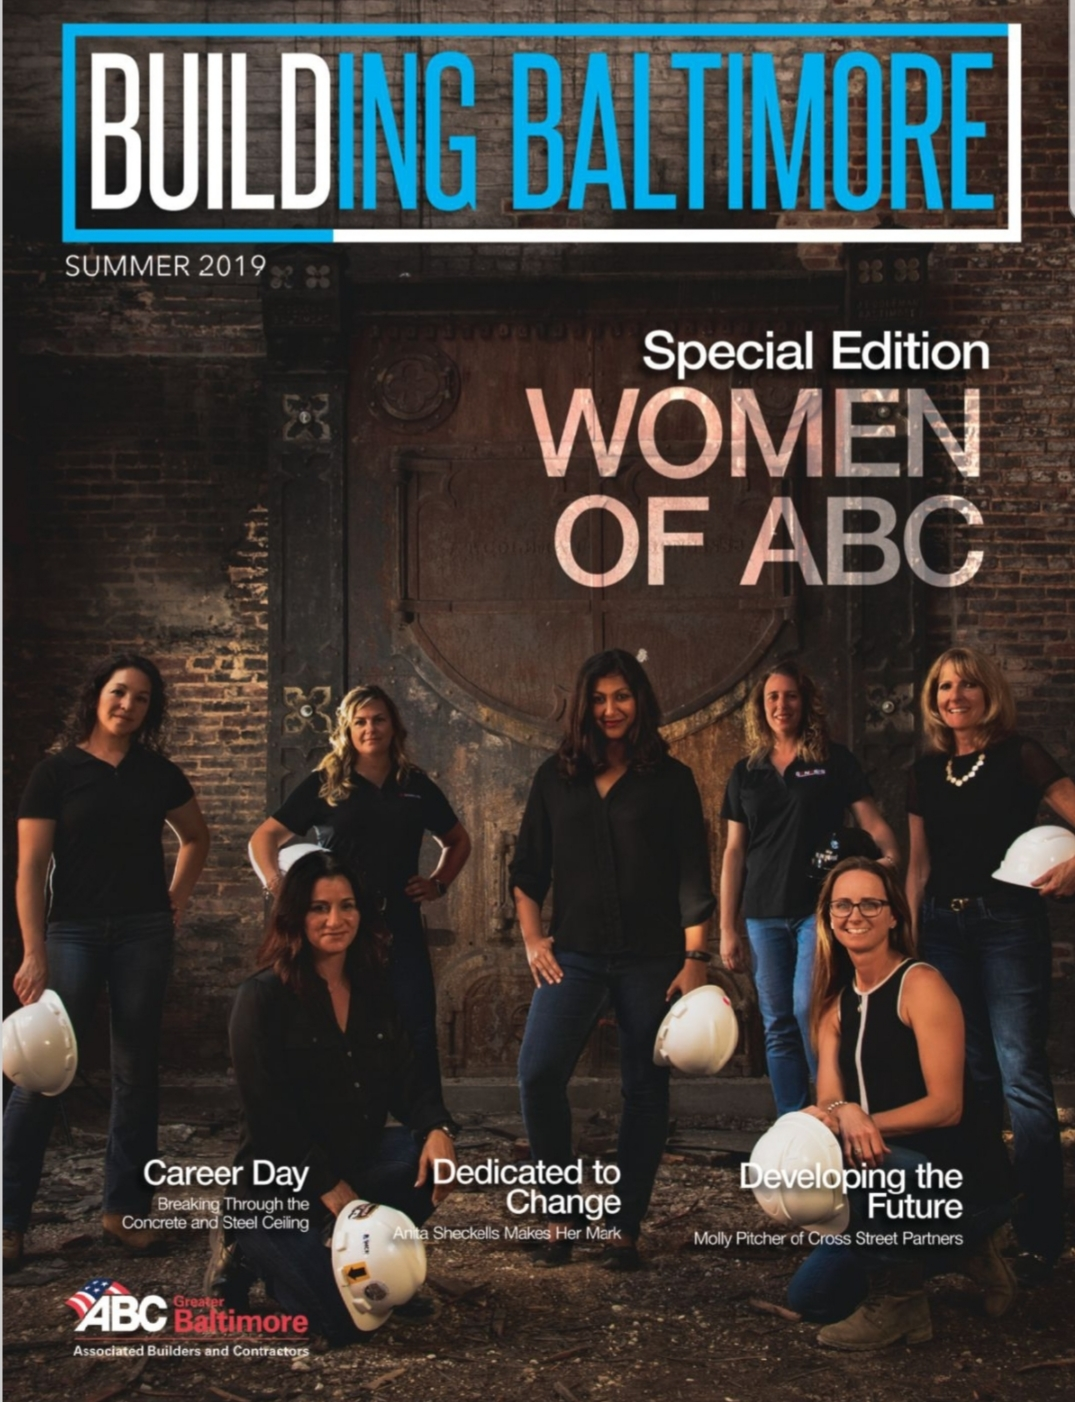 Genesis Corporation's President featured in Building Baltimore magazine.